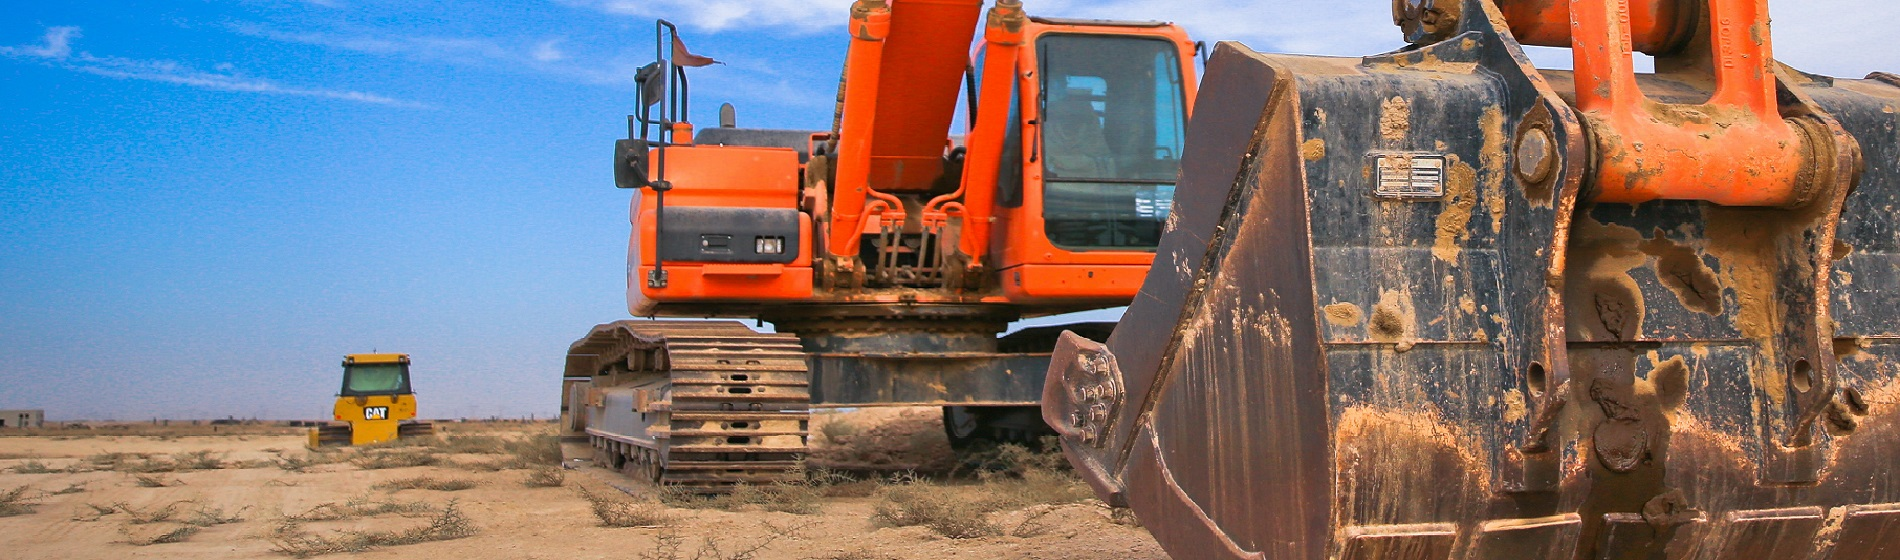 closeup of heavy equipment and earth movers